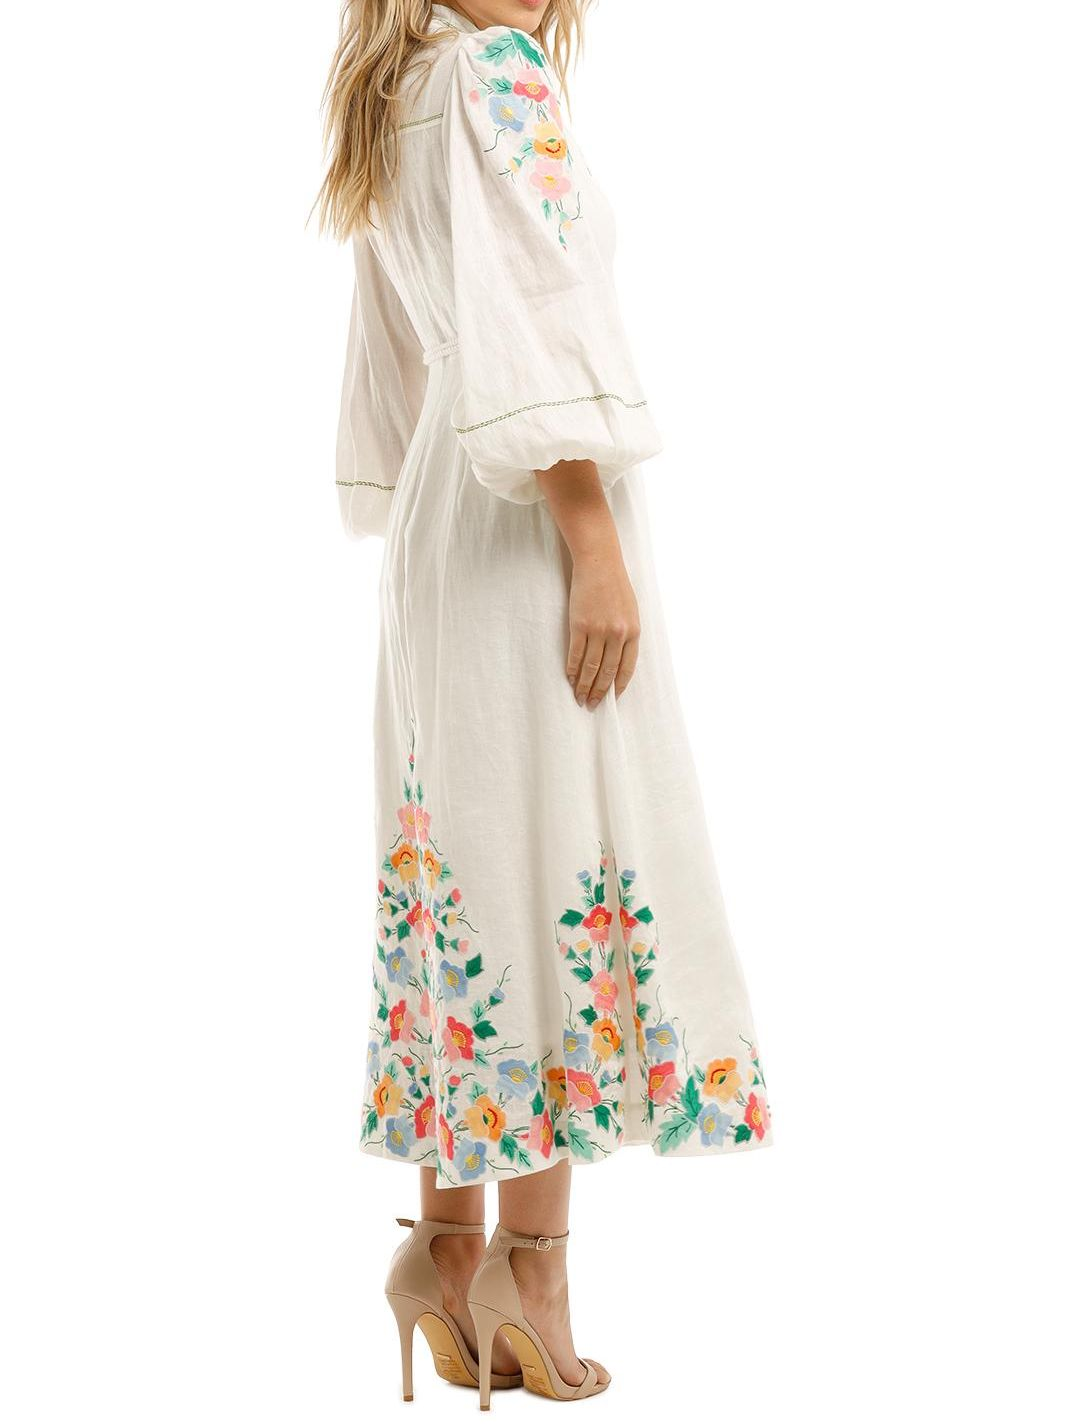 Zimmermann Fiesta Floral Applique Dress Long Sleeve